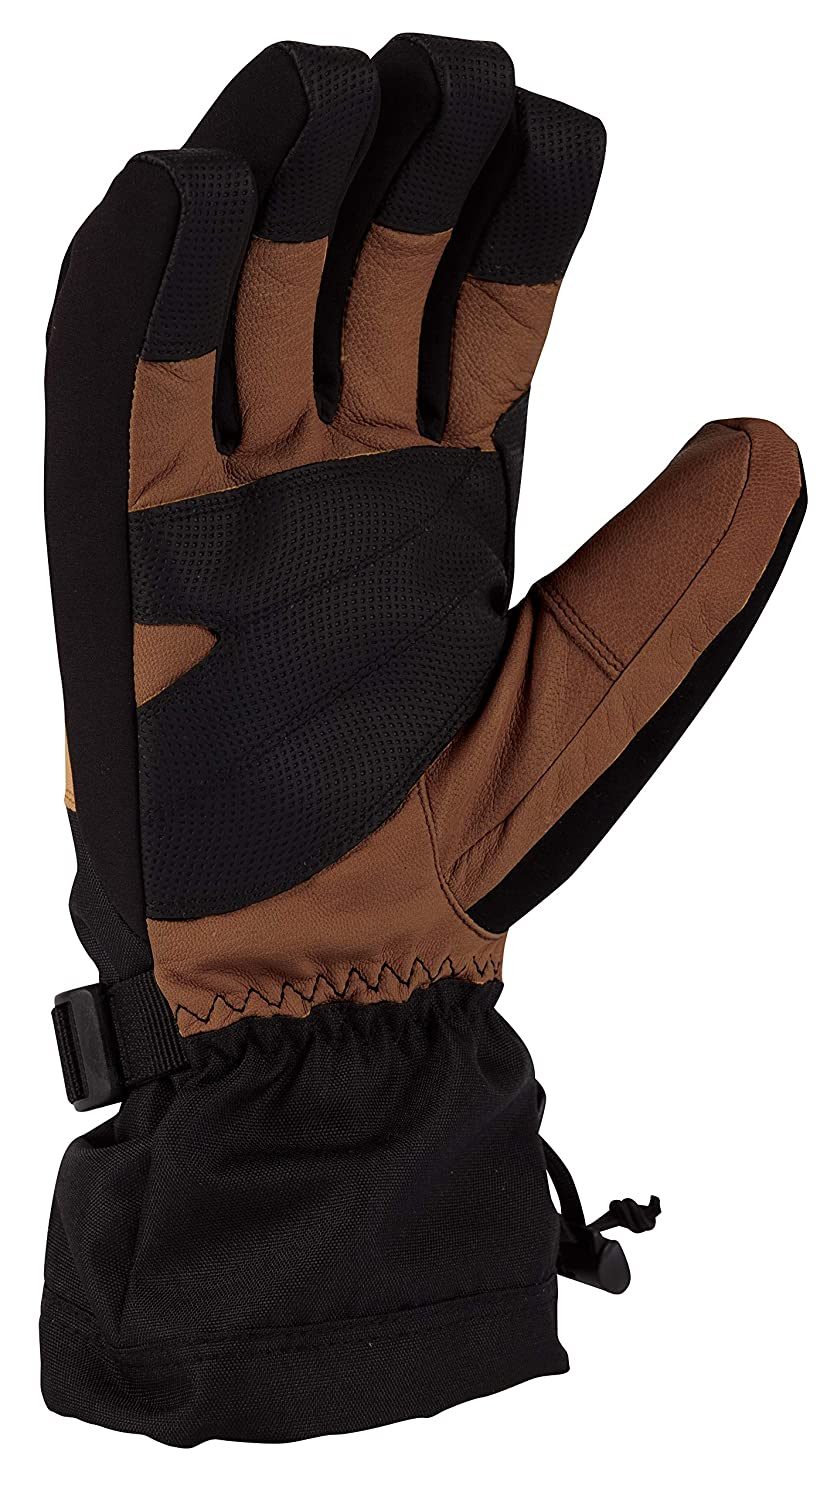 Carhartt Mens Cold Snap Insulated Work Glove